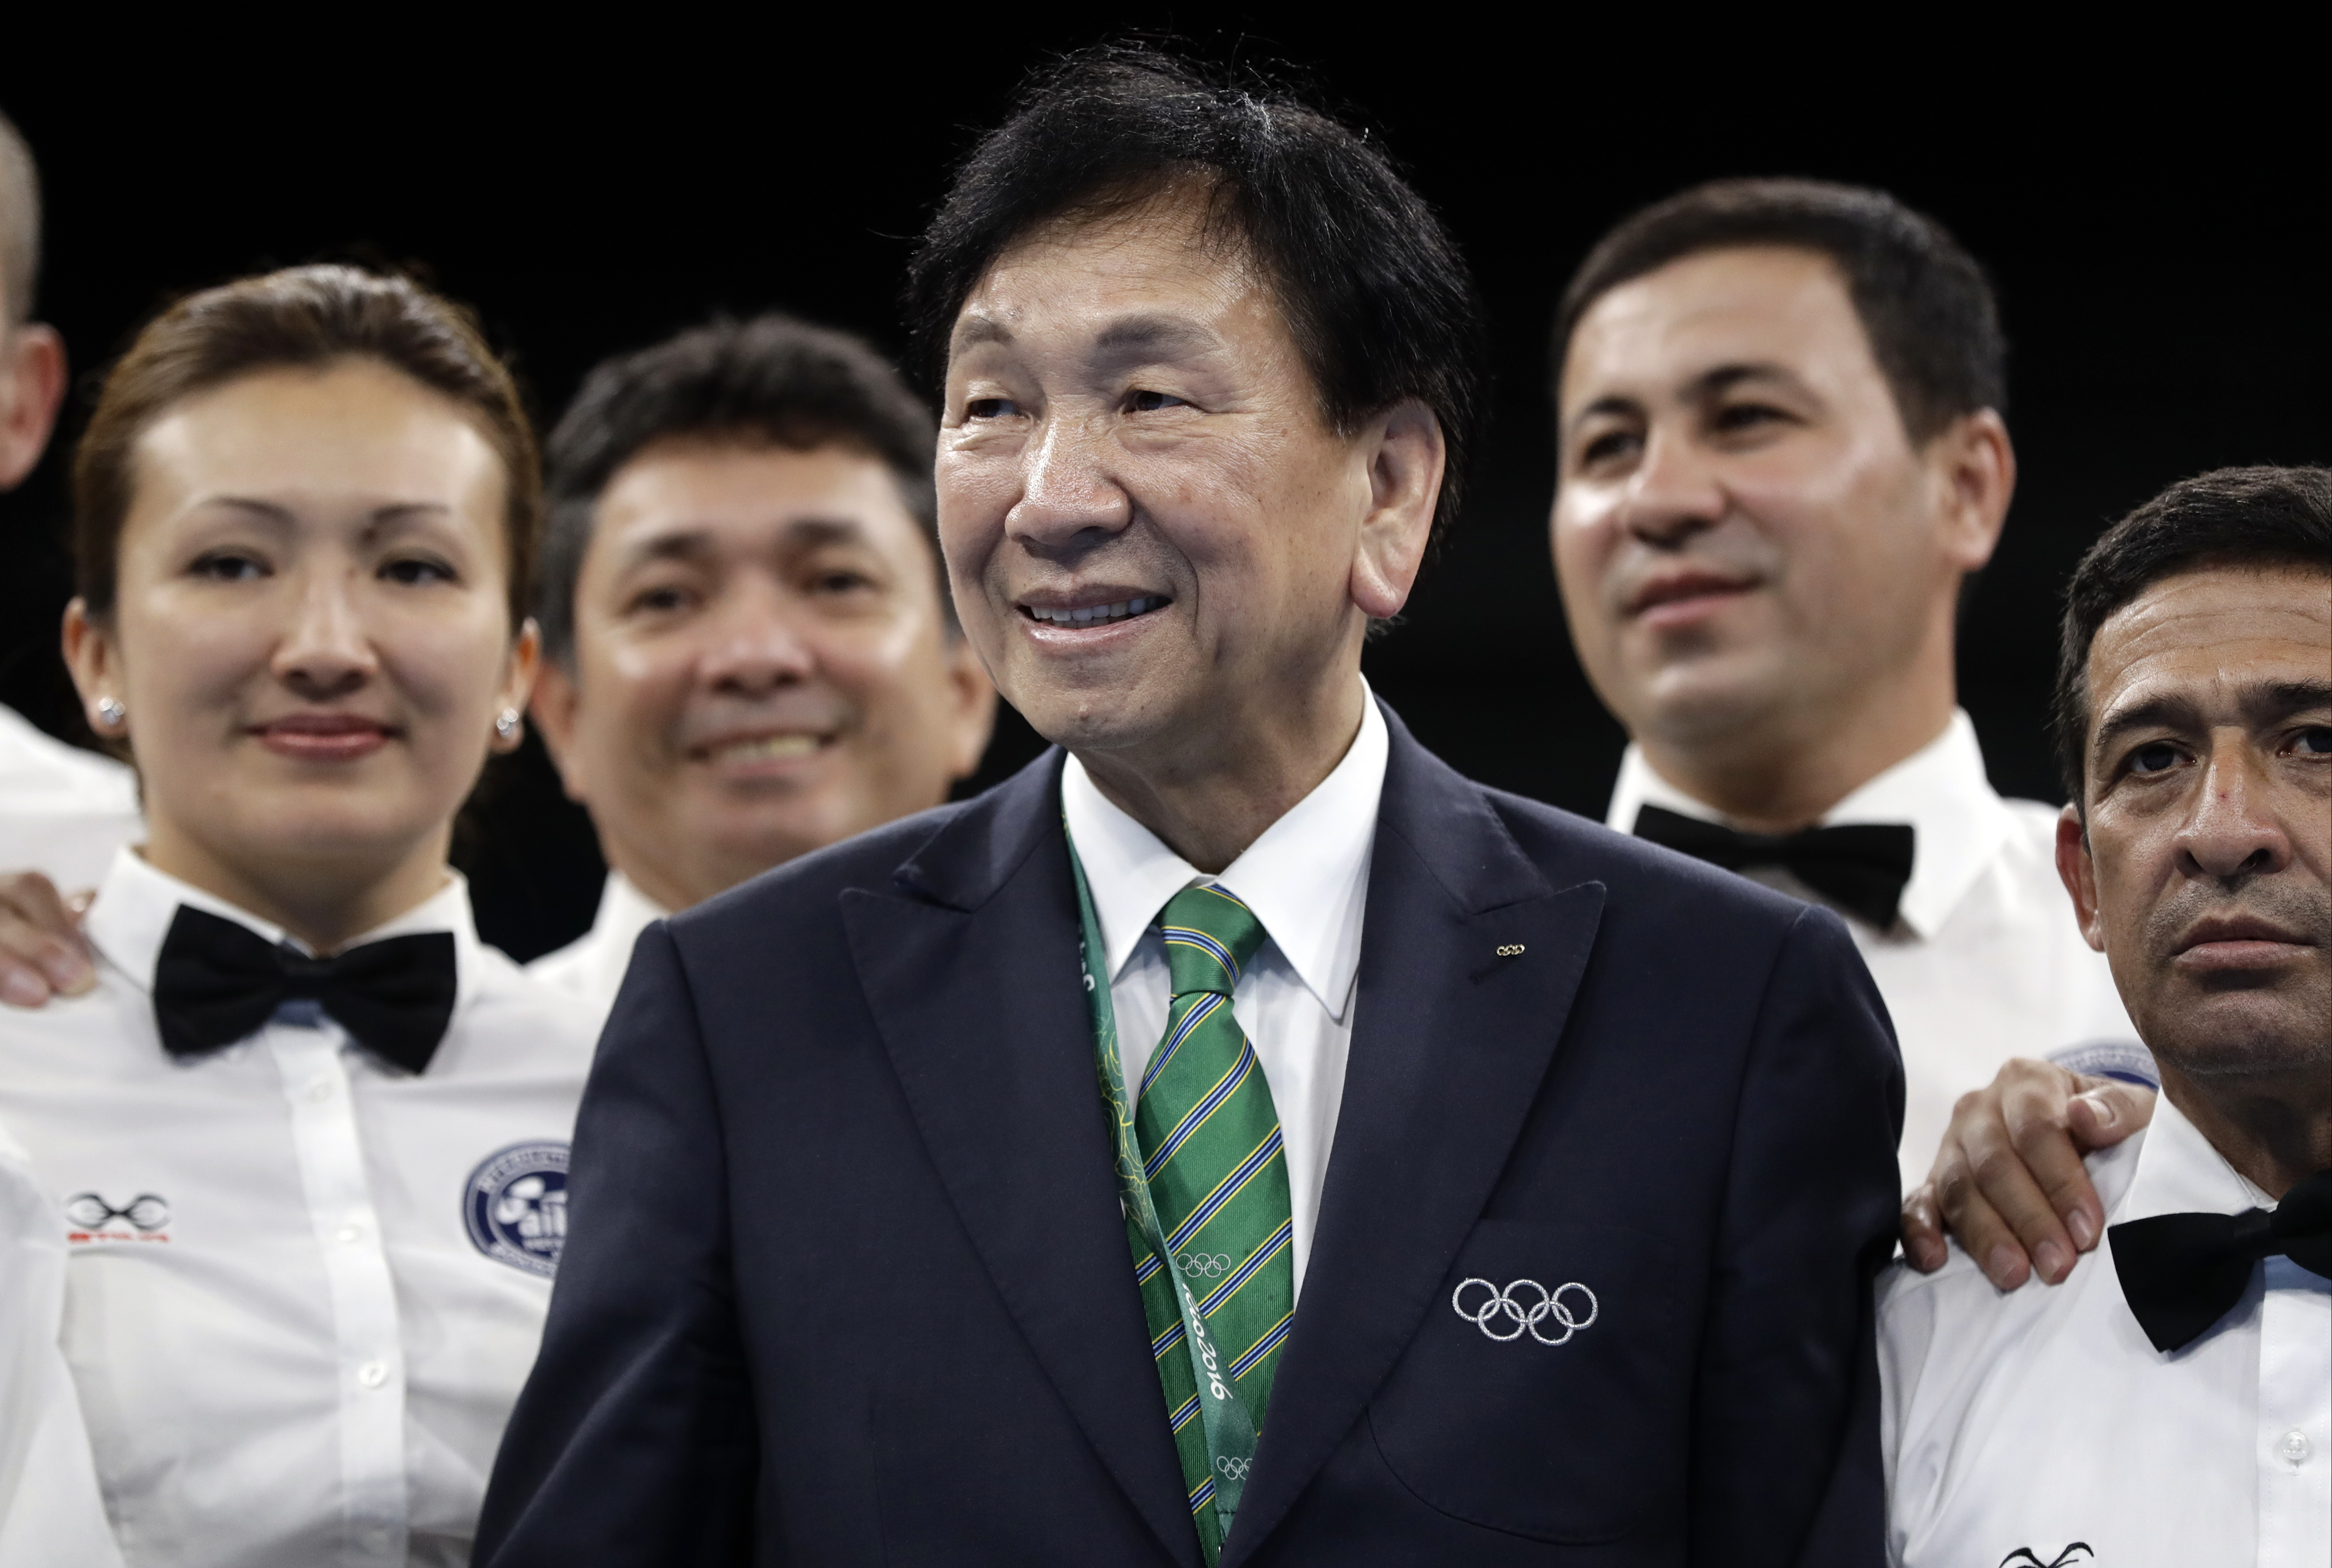 FILE - This a Sunday, Aug. 21, 2016 file photo of AIBA President Ching-Kuo Wu as he  poses for picture with referees in the ring after the final matches at the 2016 Summer Olympics in Rio de Janeiro, Brazil.  The embattled governing body of Olympic boxing